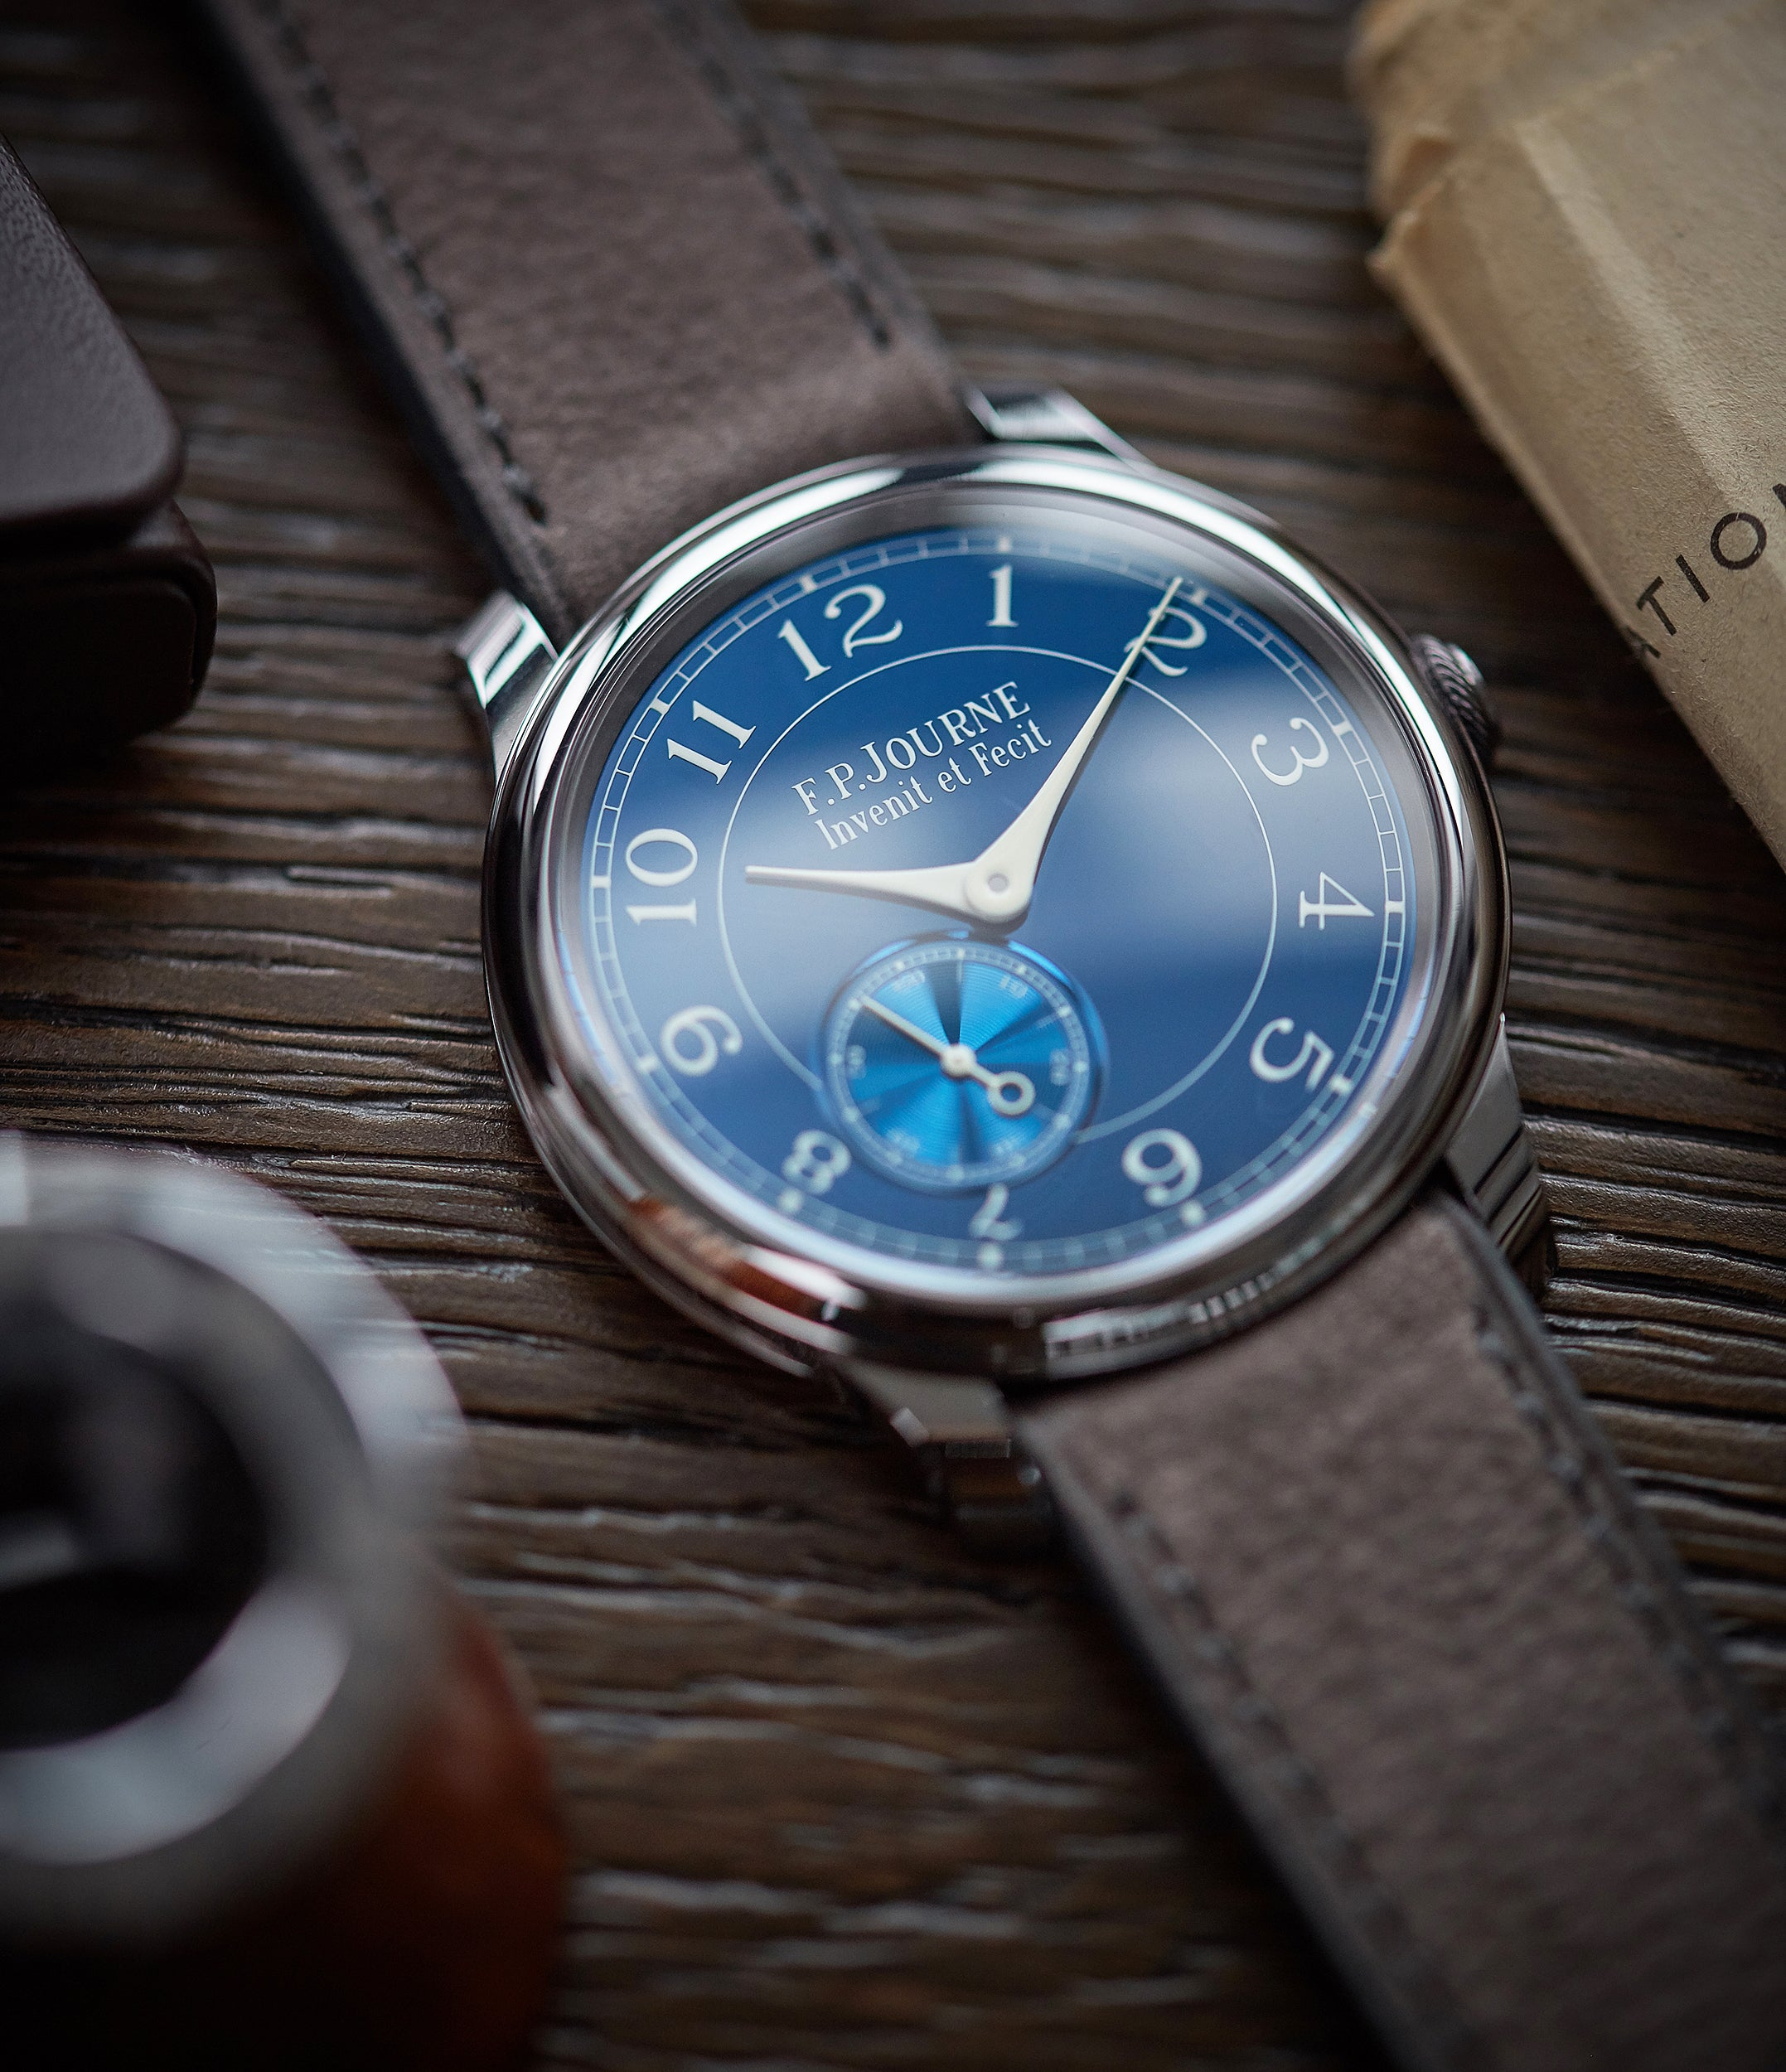 selling F. P. Journe Chronometre Bleu tantalum blue dial rare dress watch for sale online at A Collected Man London approved reseller of independent watchmakers